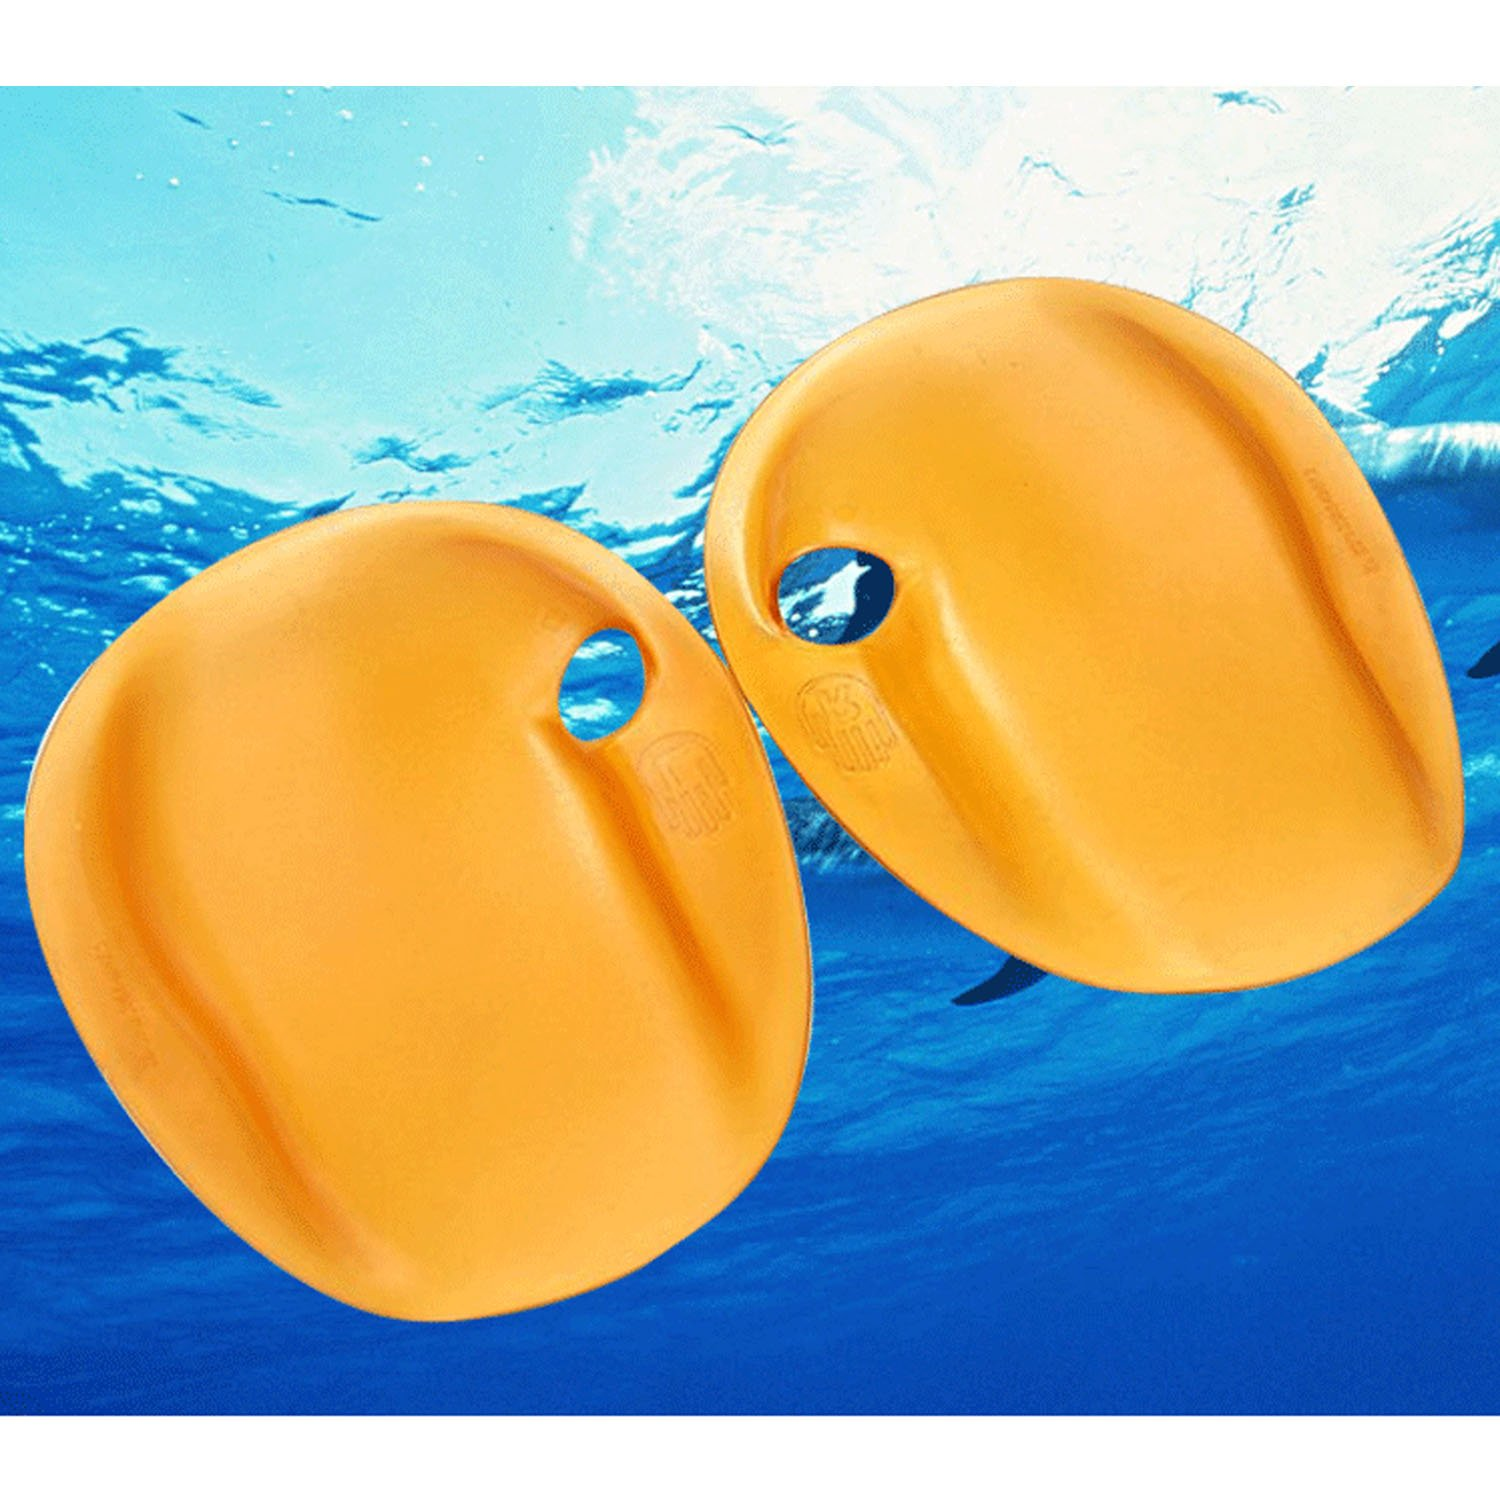 Beetest-1Pair Fashion Portable Swimming Strapless Agility Hand Paddles Swim Training Paddles for Women Lady Size M Yellow